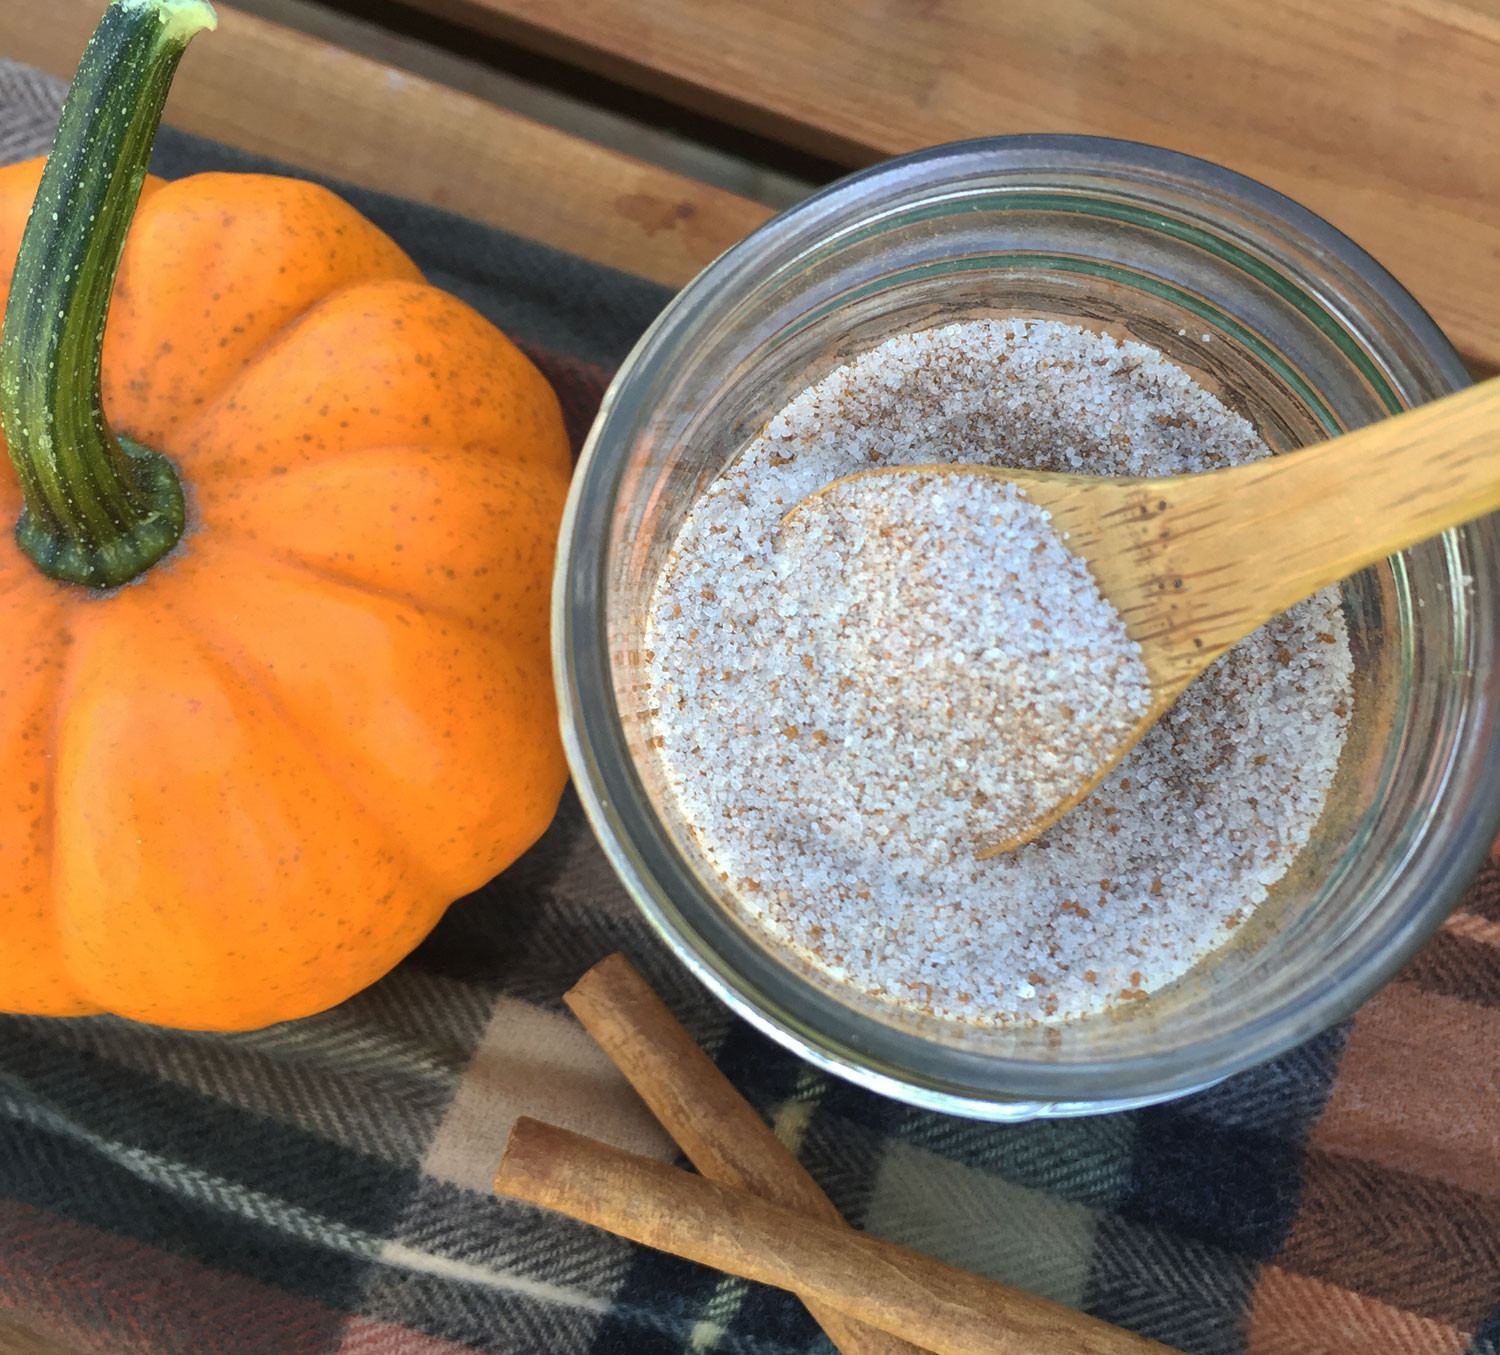 Best ideas about DIY Pumpkin Spice . Save or Pin DIY Pumpkin Spice Fashion meets Food Now.